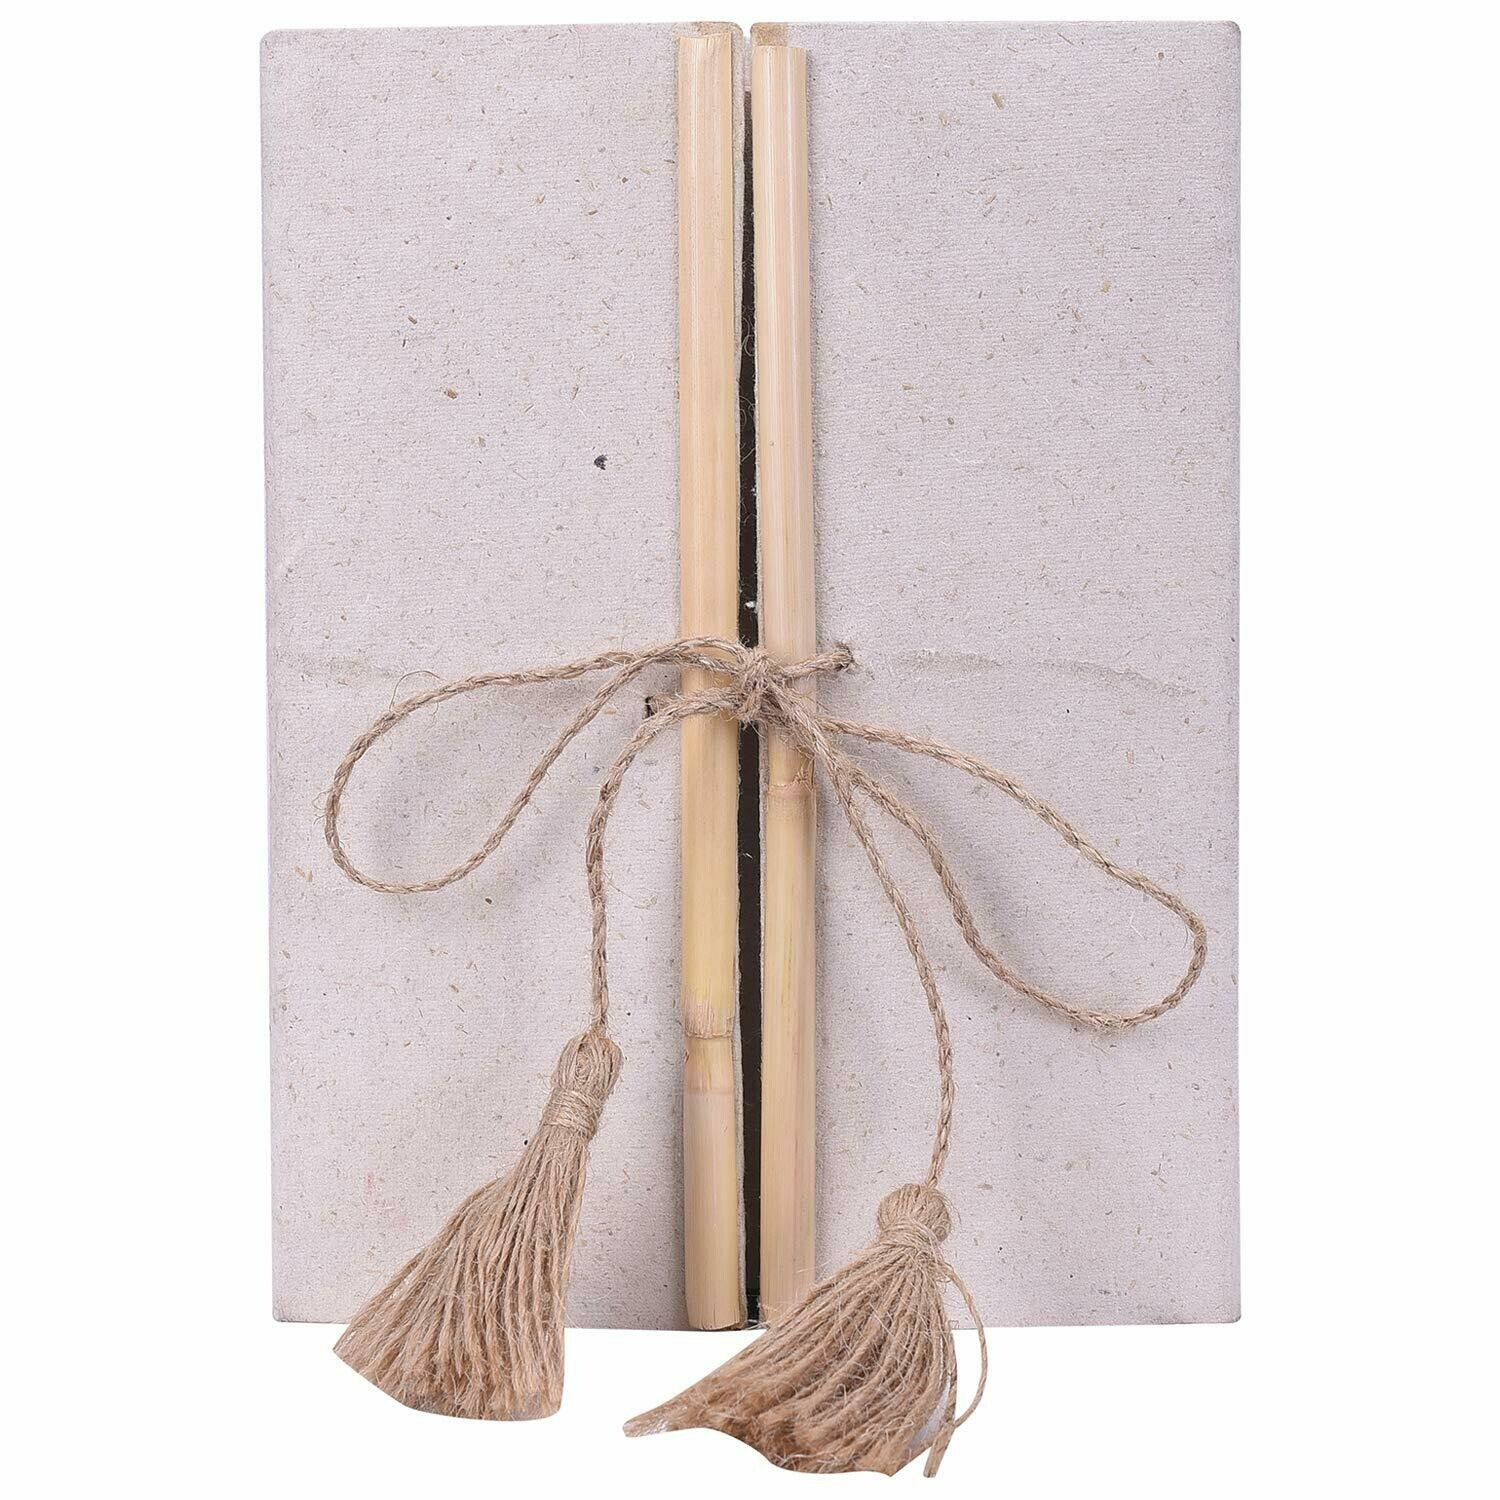 Double Door Note Book, Made from Cow Dung/Gobar